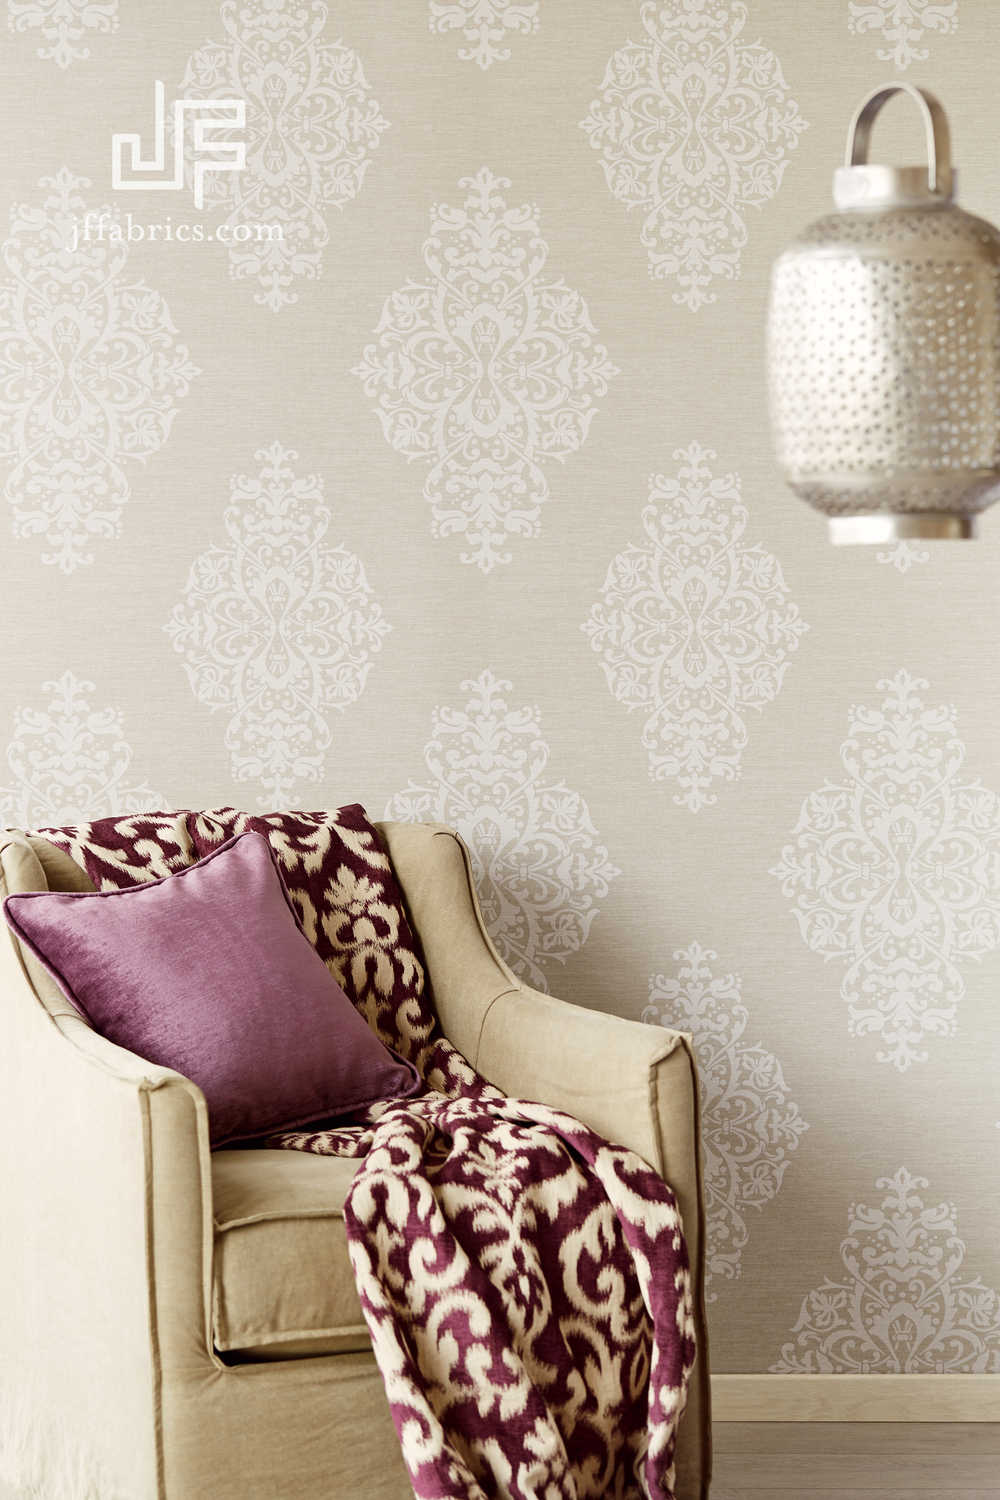 WALLPAPER FROM JF FABRICS